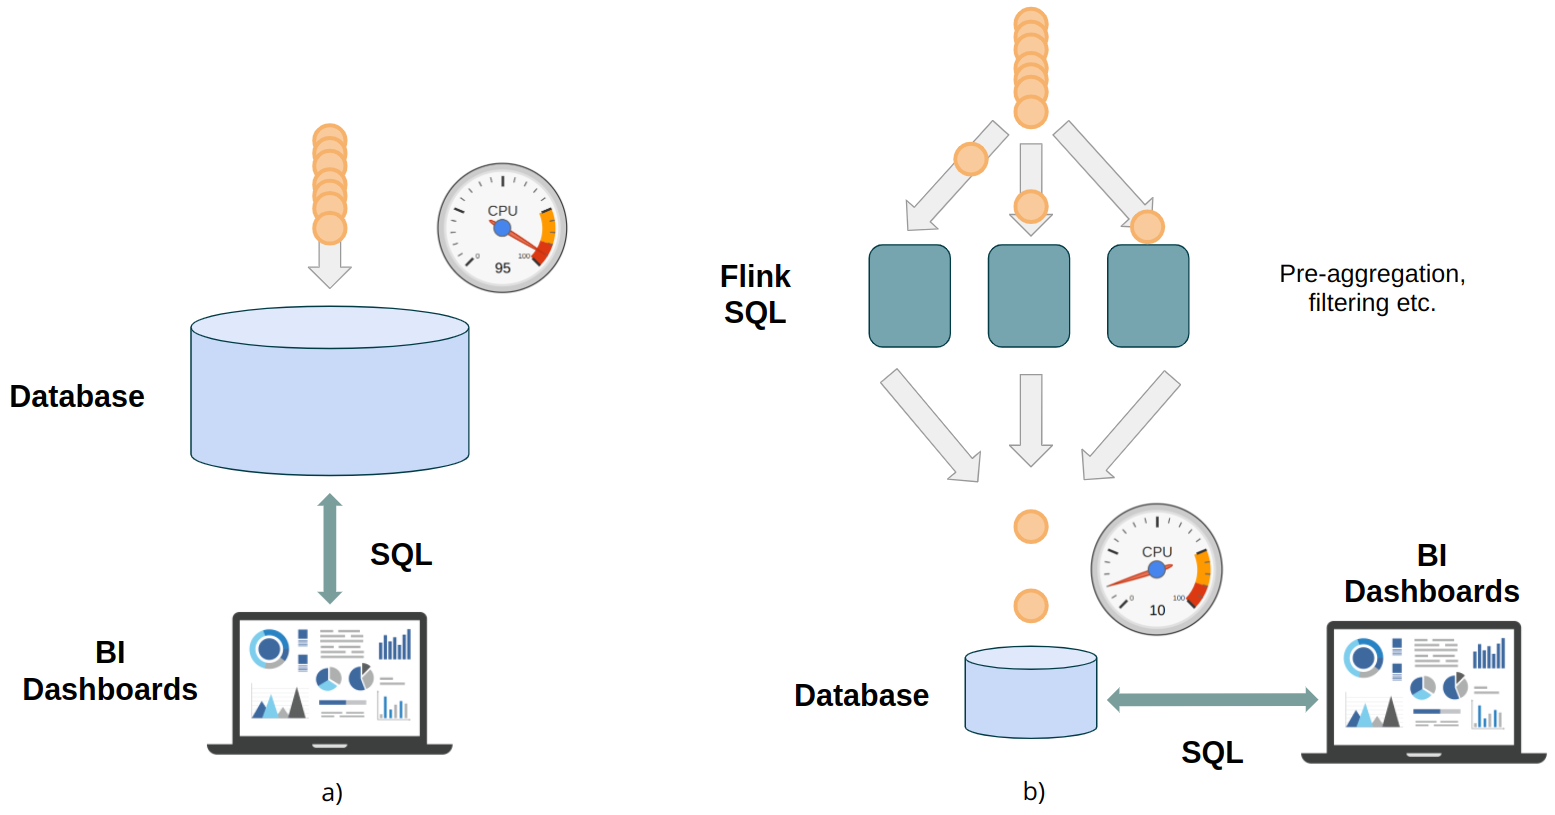 Real-time analytics pipeline with (b) and without (a) Flink SQL